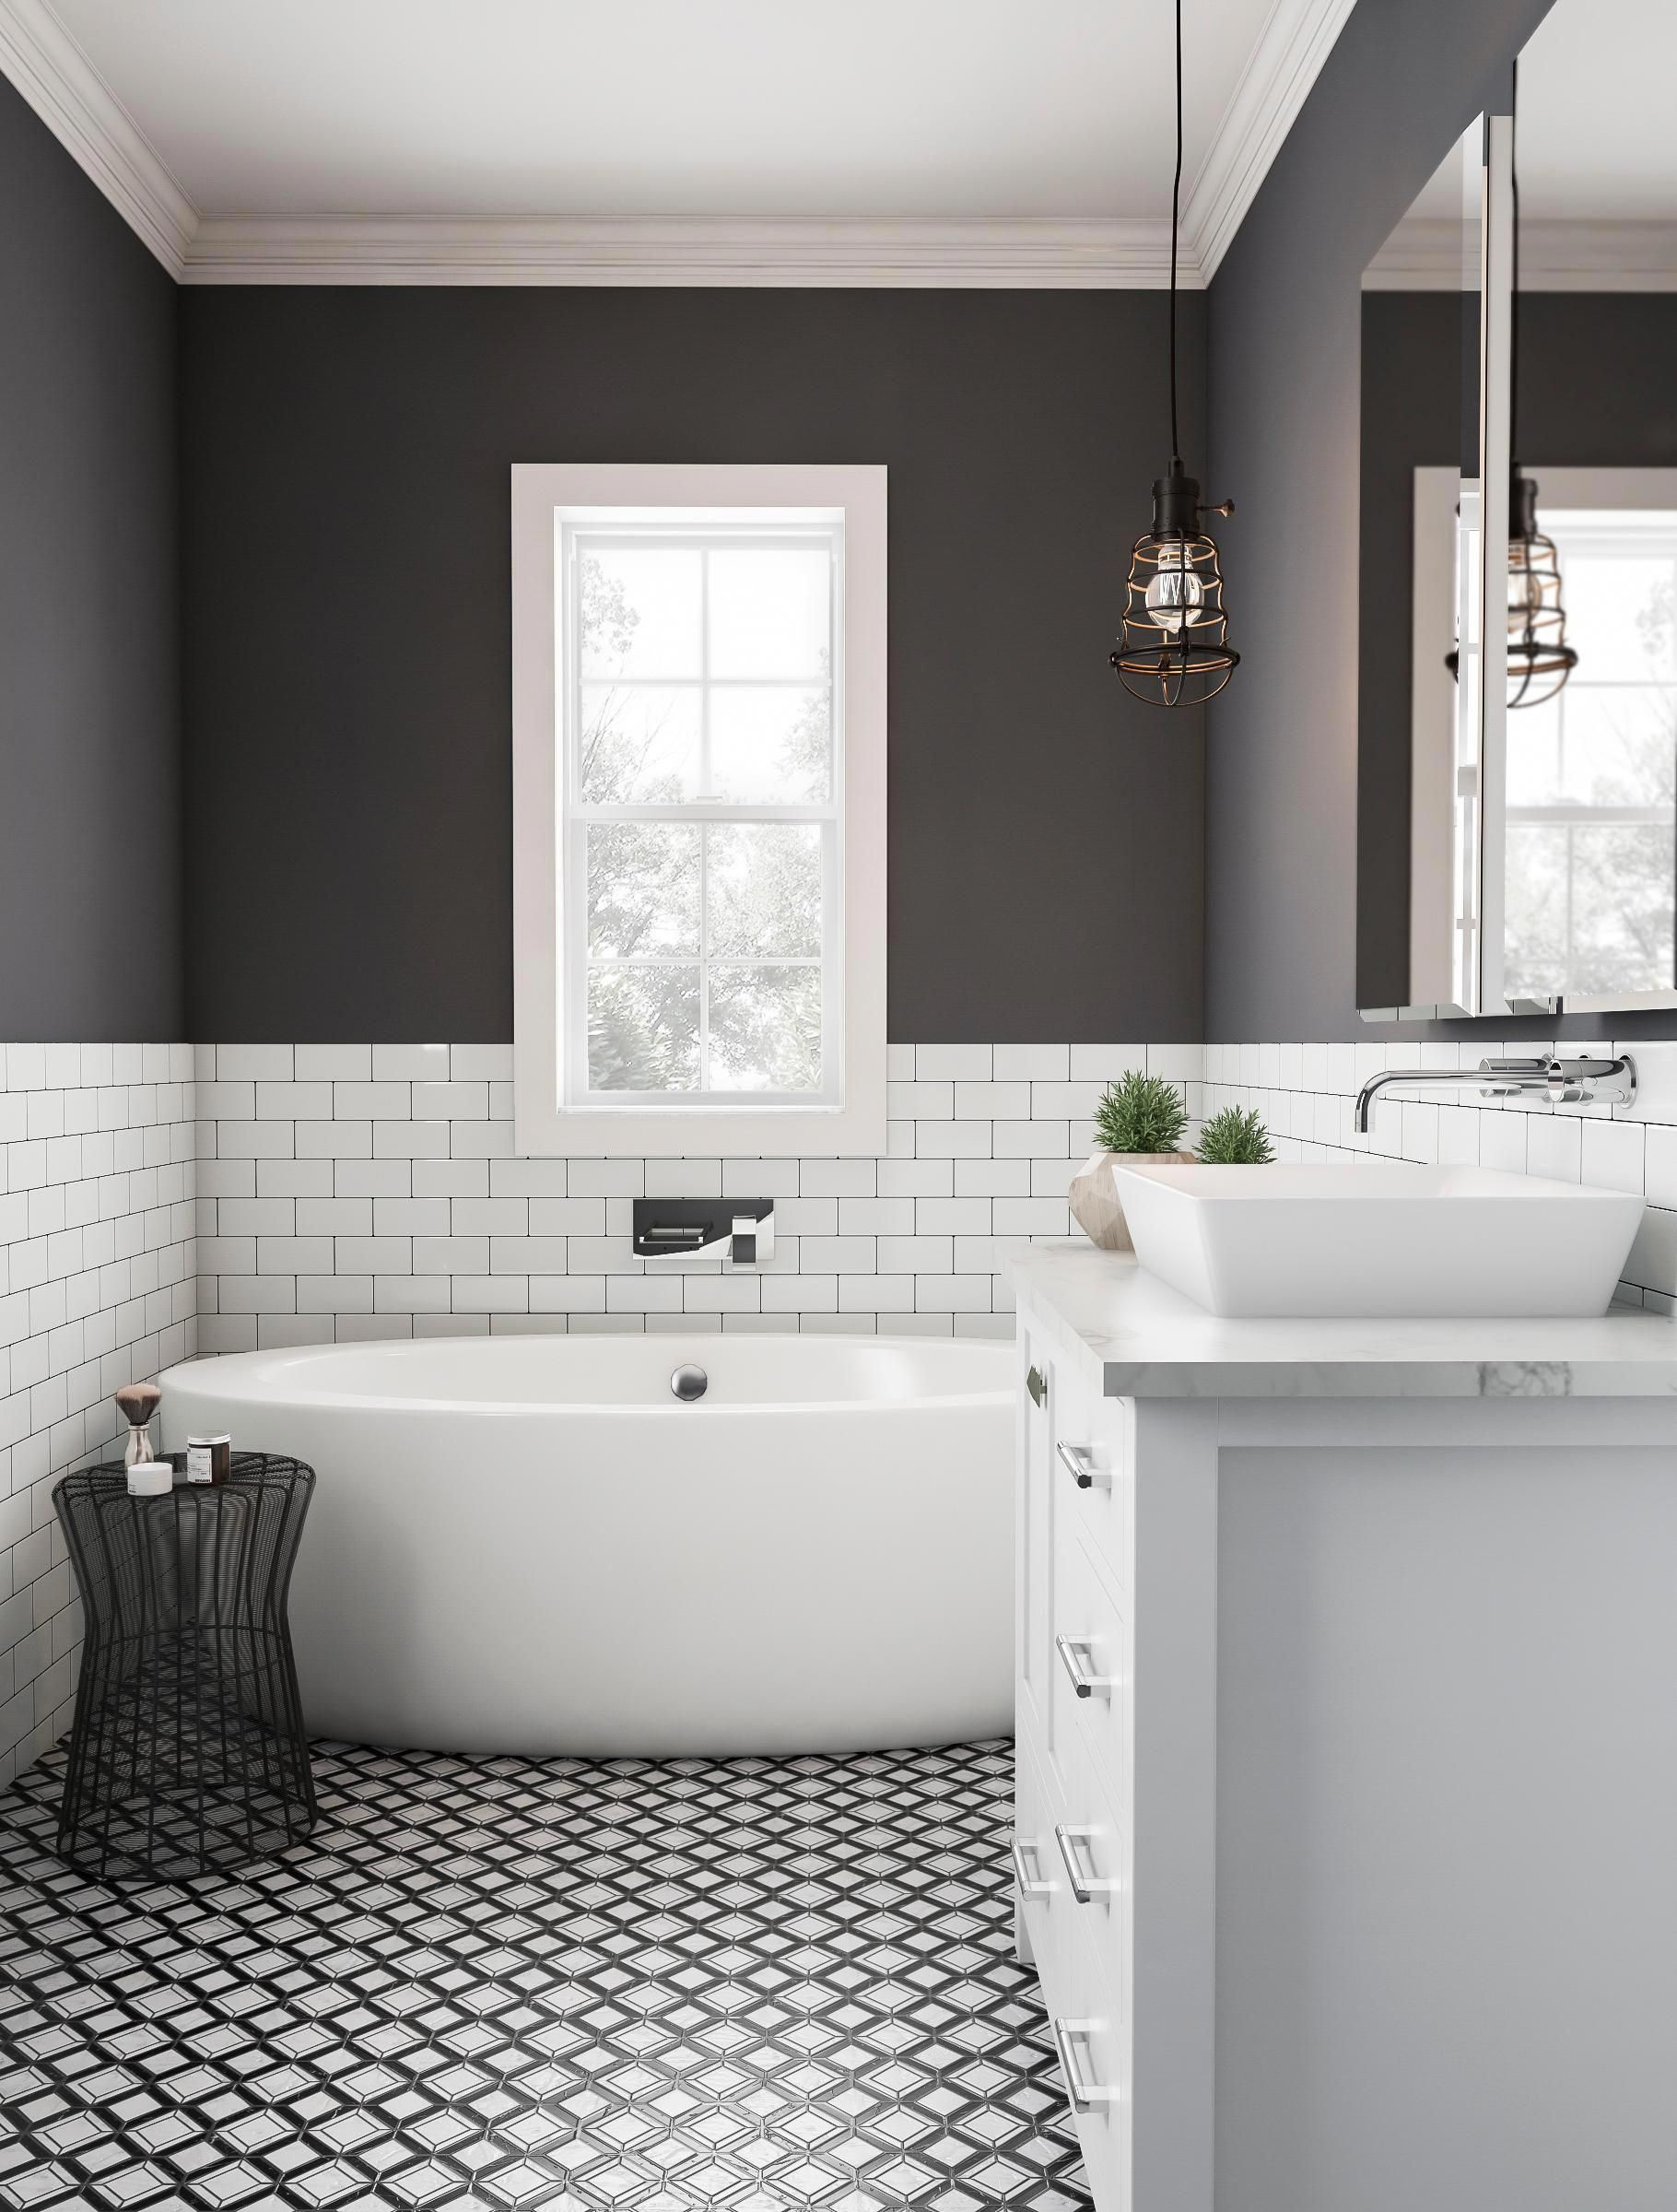 Badezimmer ideen keine badewanne the right contrasts let you go dark in the bathroom work your bold